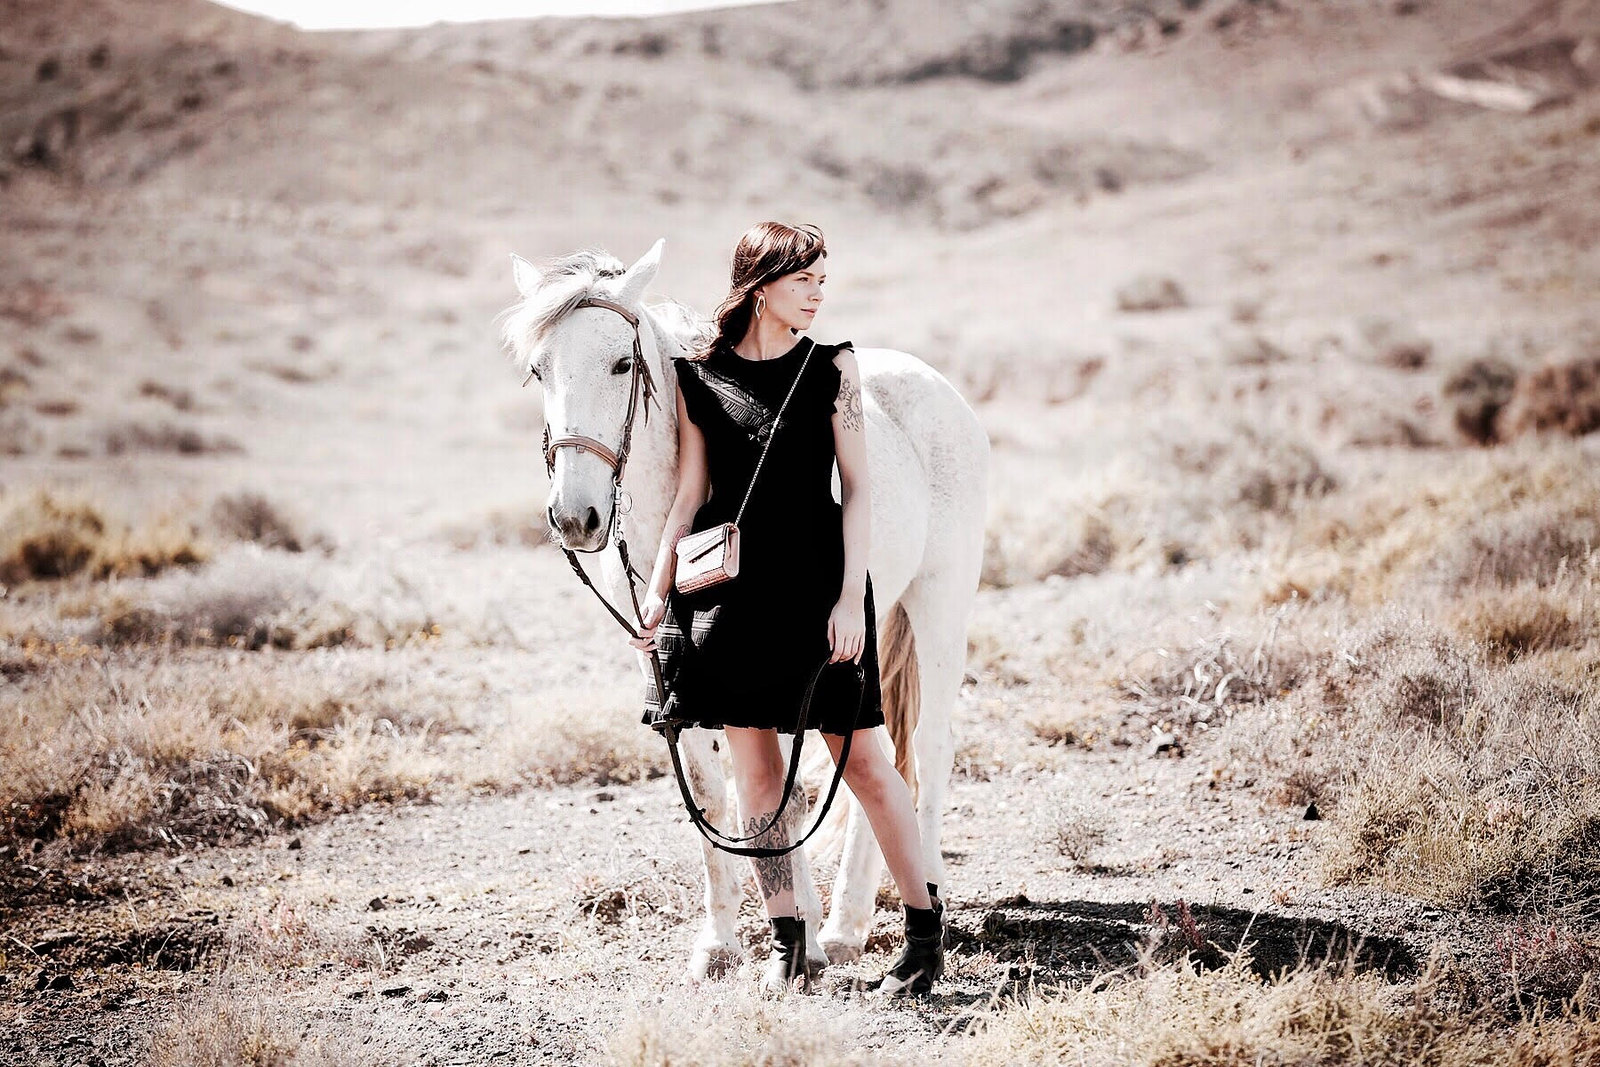 horse white desert jimmy choo glitter bag maje black cocktail dress cowgirl riding adventure freedom outfit ootd modeblogger breuninger fashionblog cats & dogs ricarda schernus düsseldorf 7